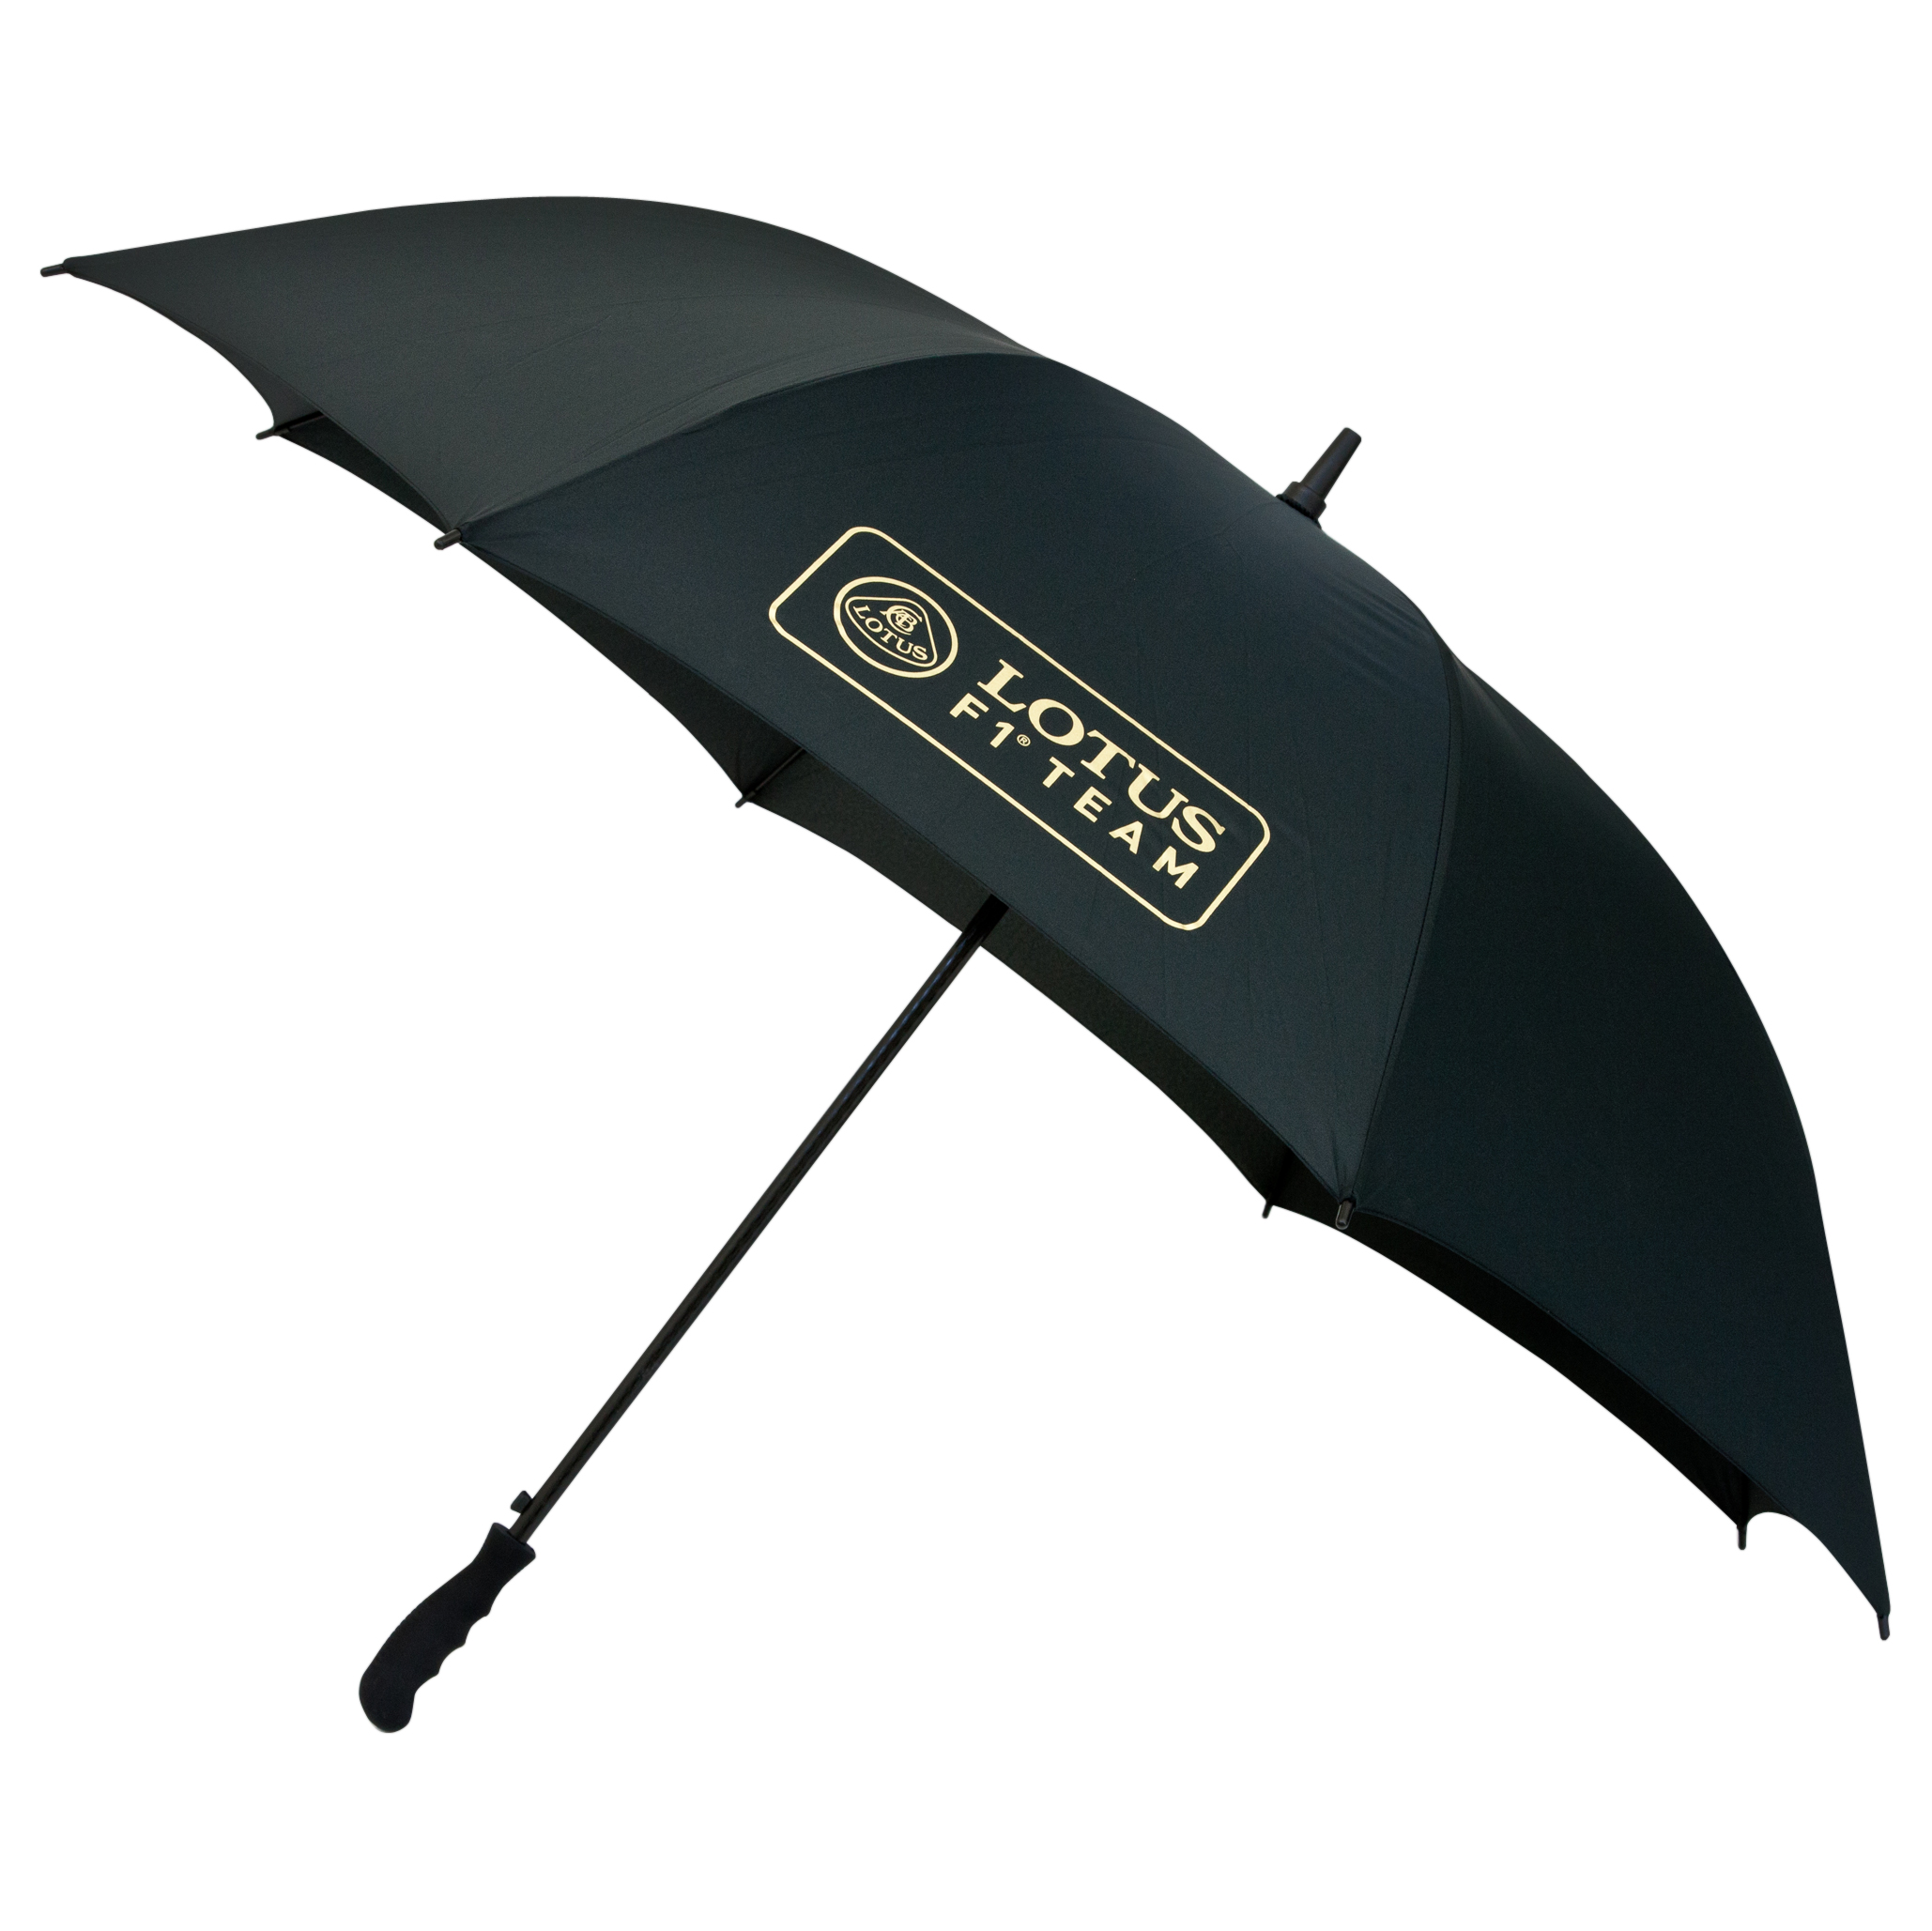 Lotus F1 Team Golf Umbrella